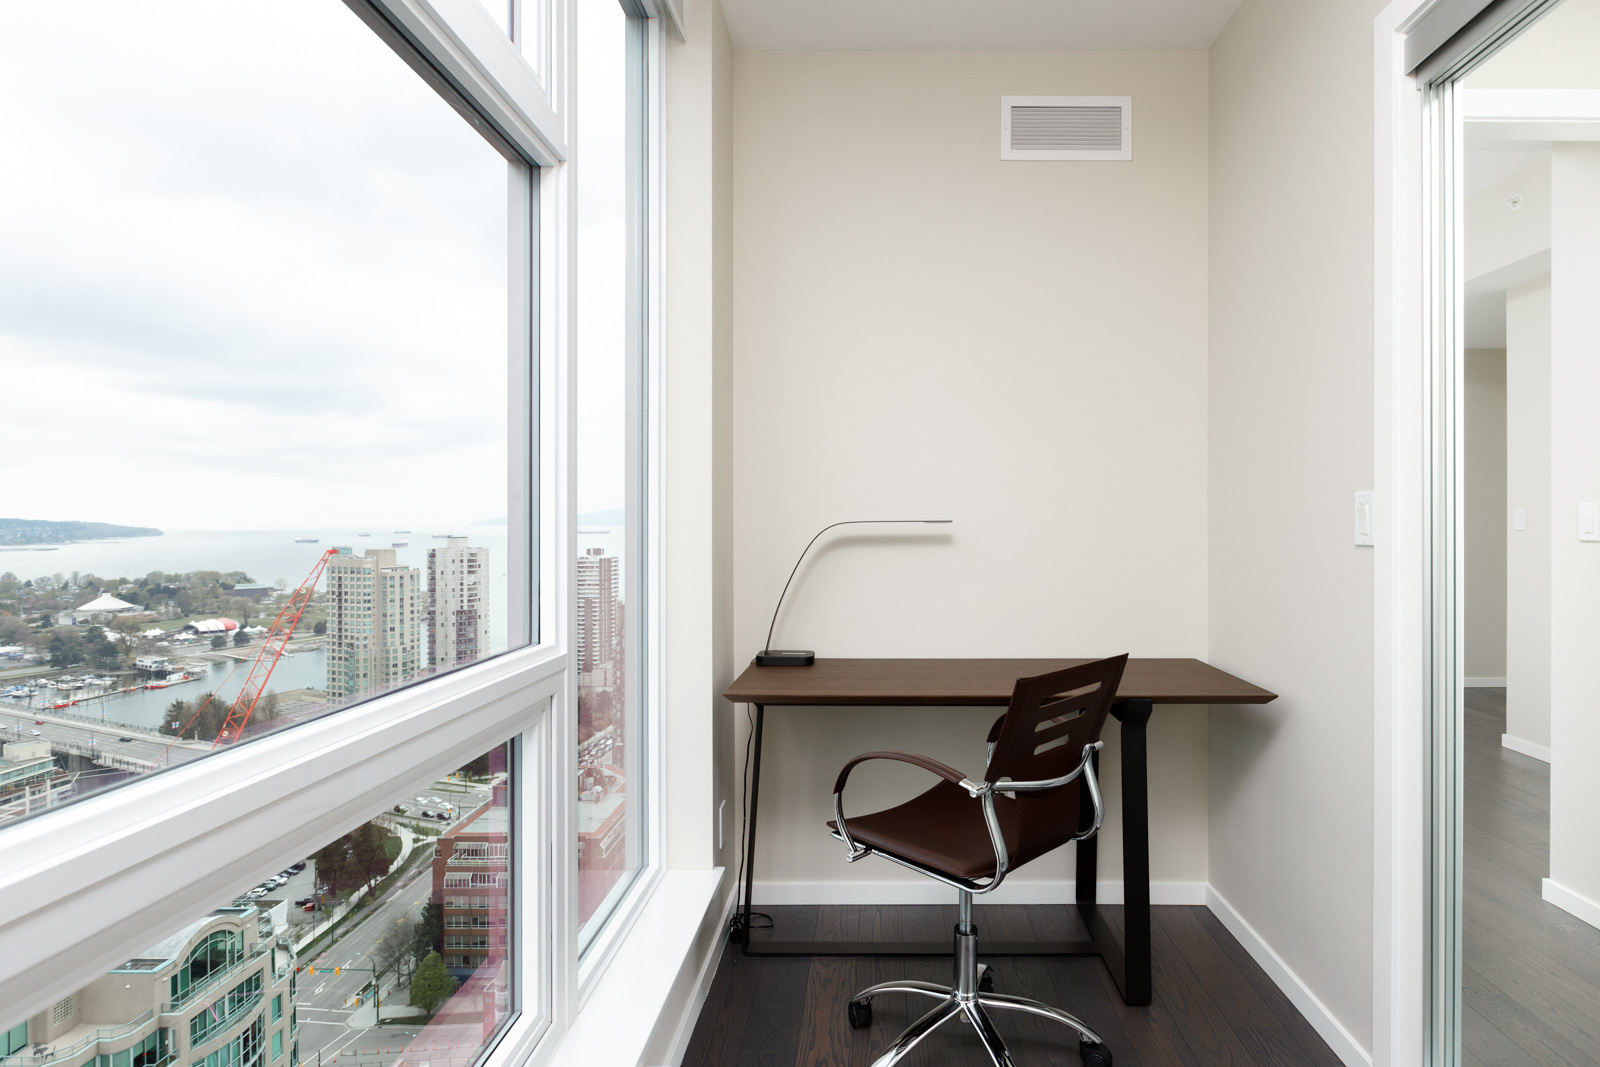 Study den in Vancouver rental condo with view.